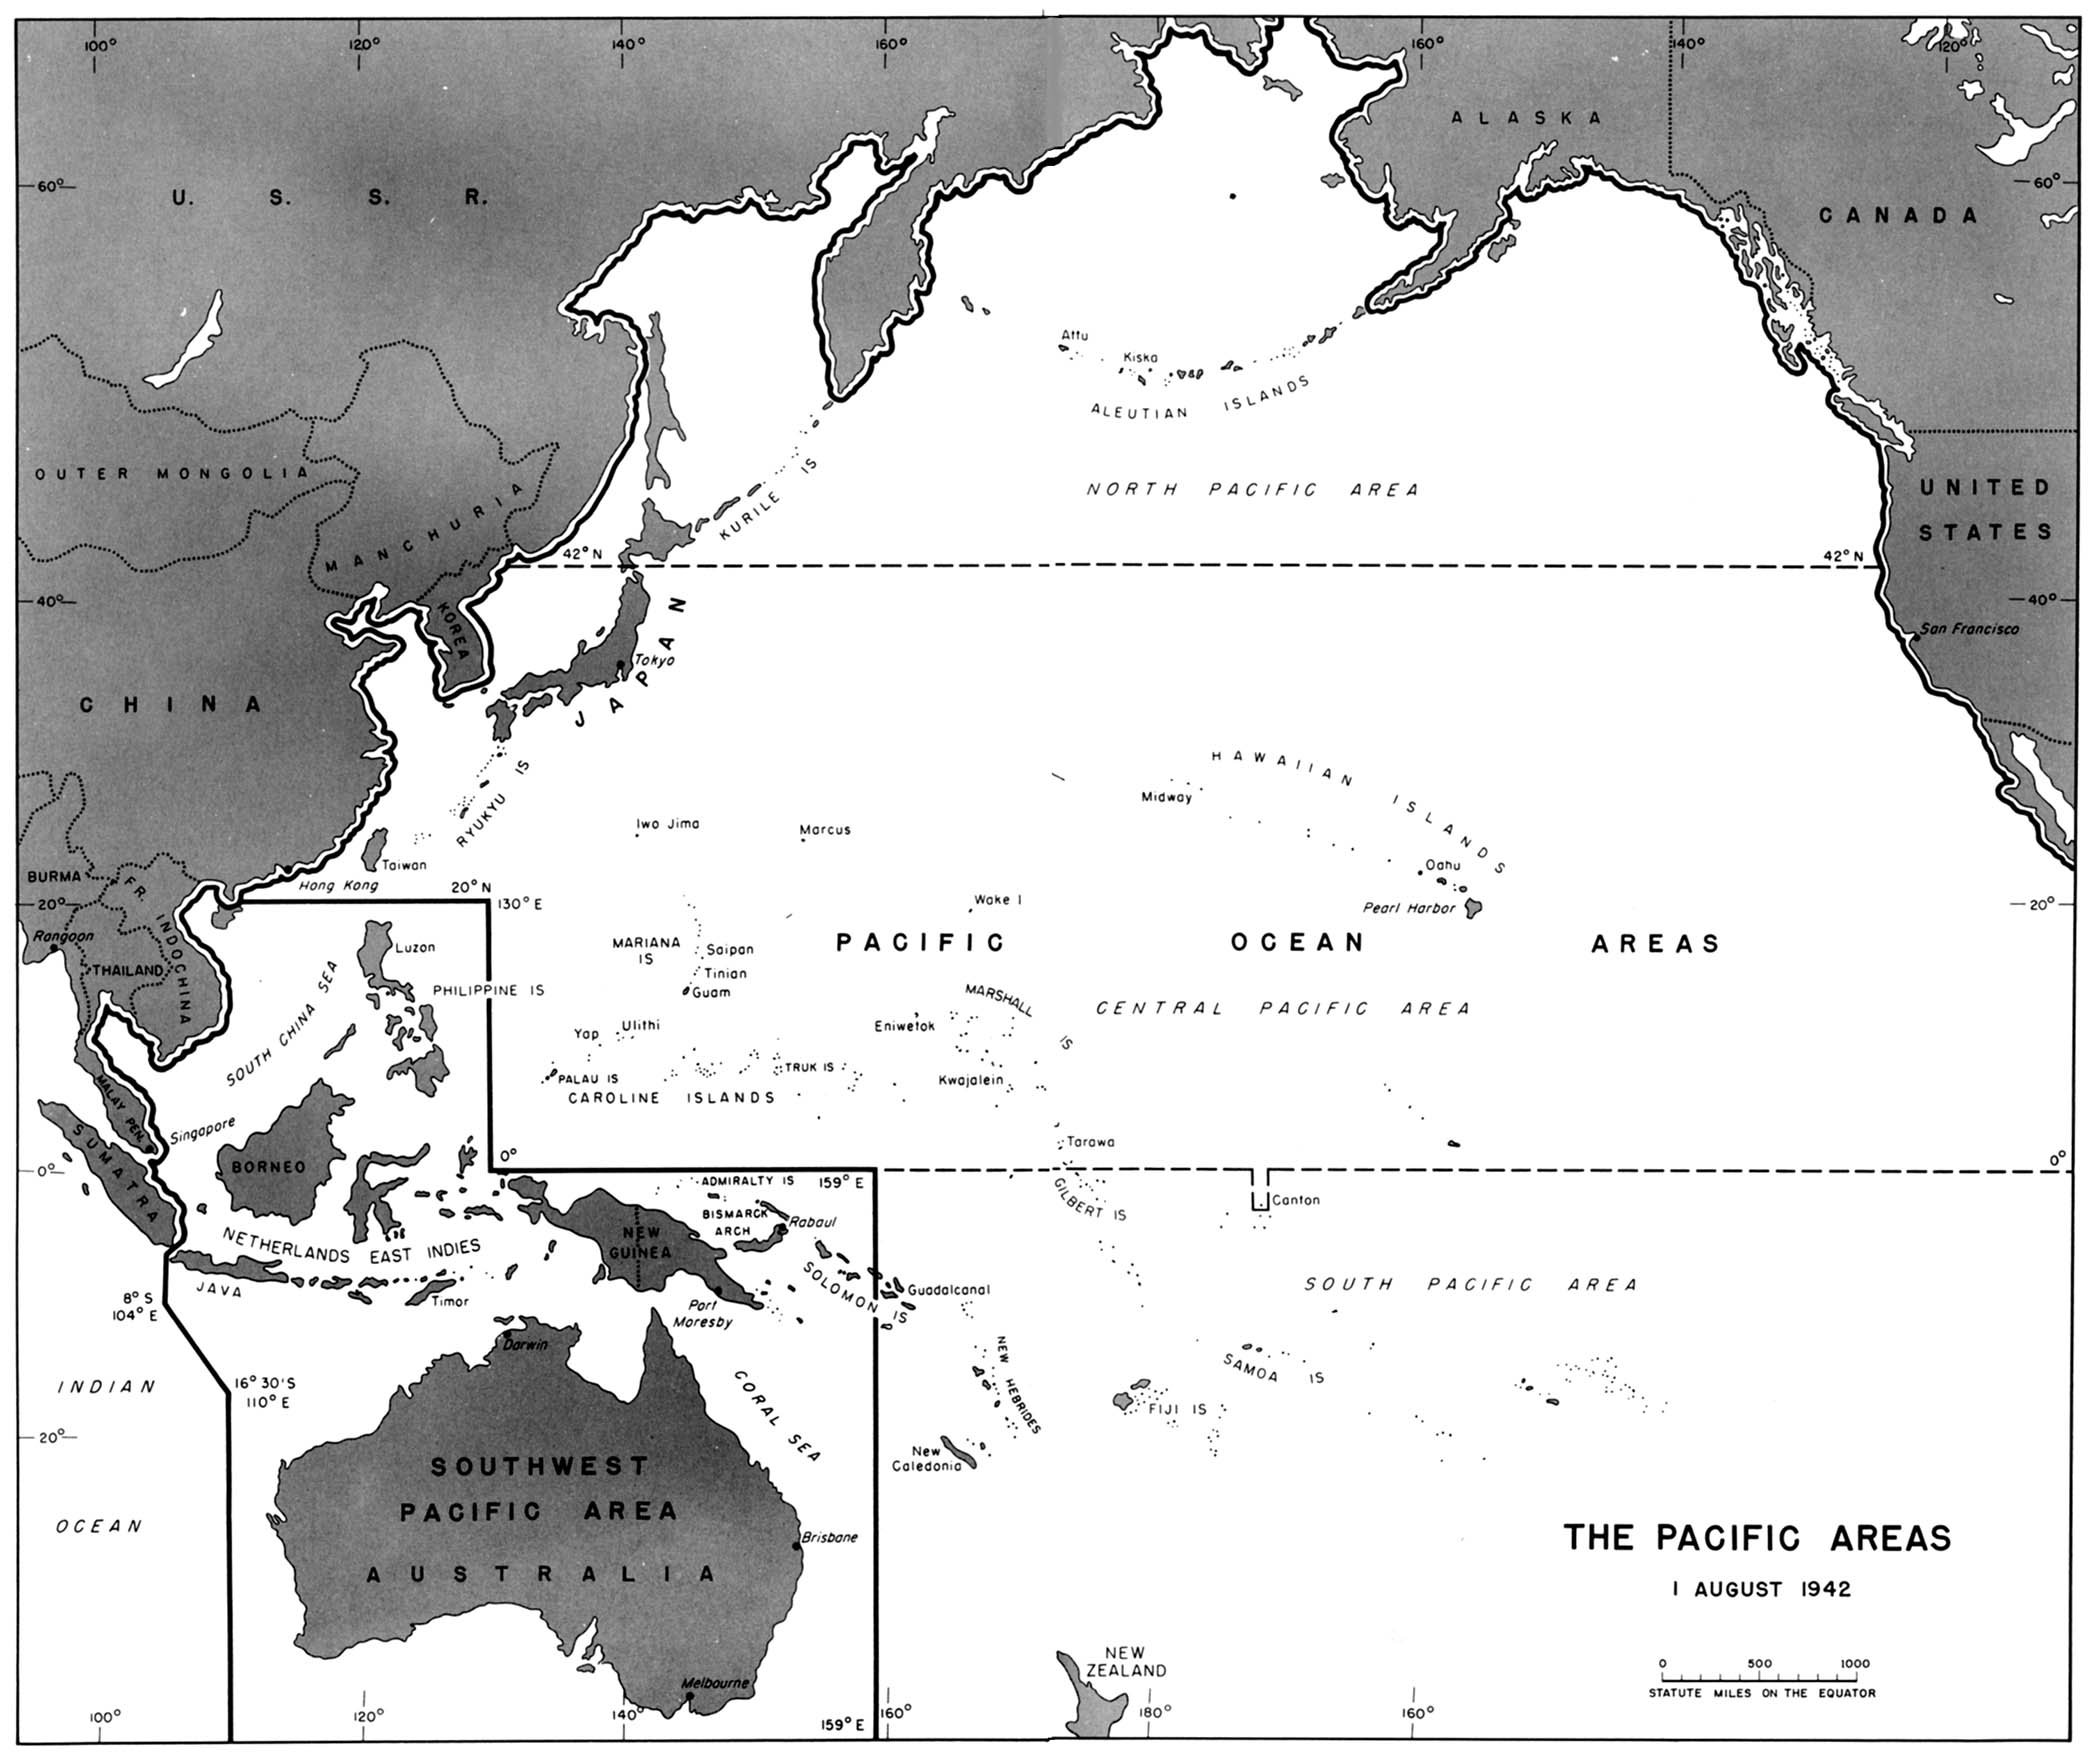 pacific areas 1 august 1942